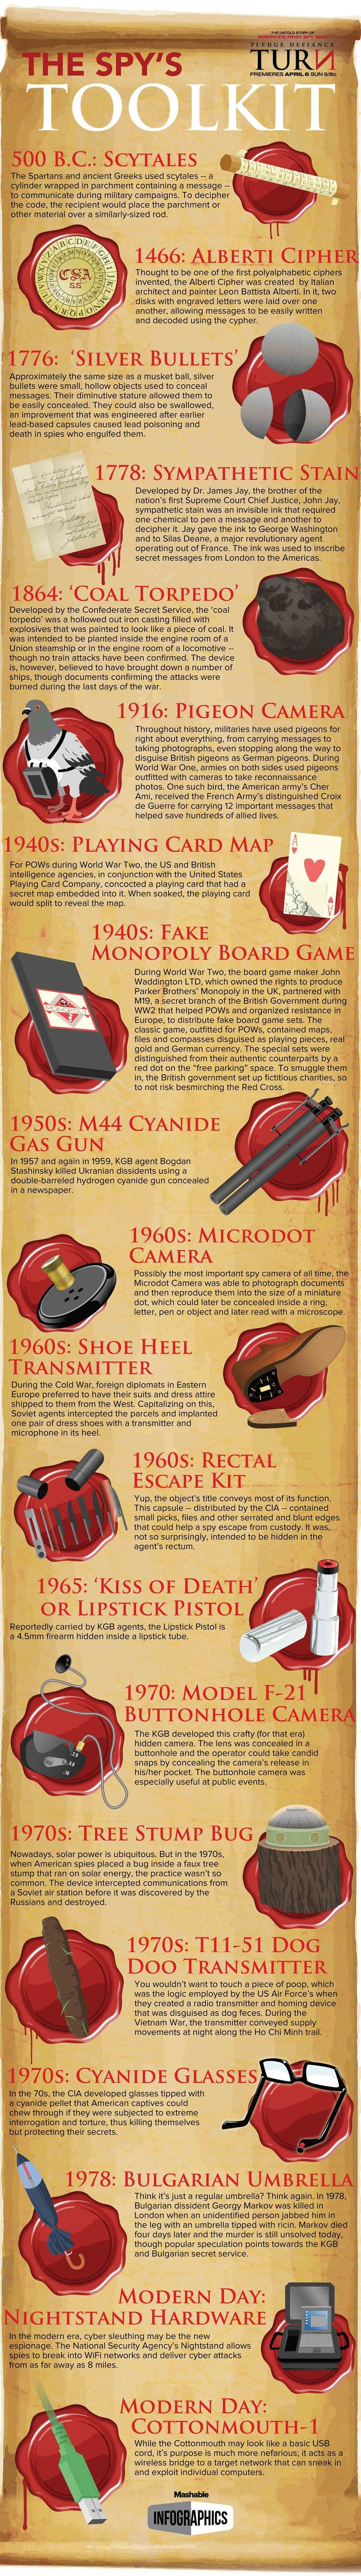 Spy's Toolkit -- very useful if you're writing historical or spy stories... #infographic